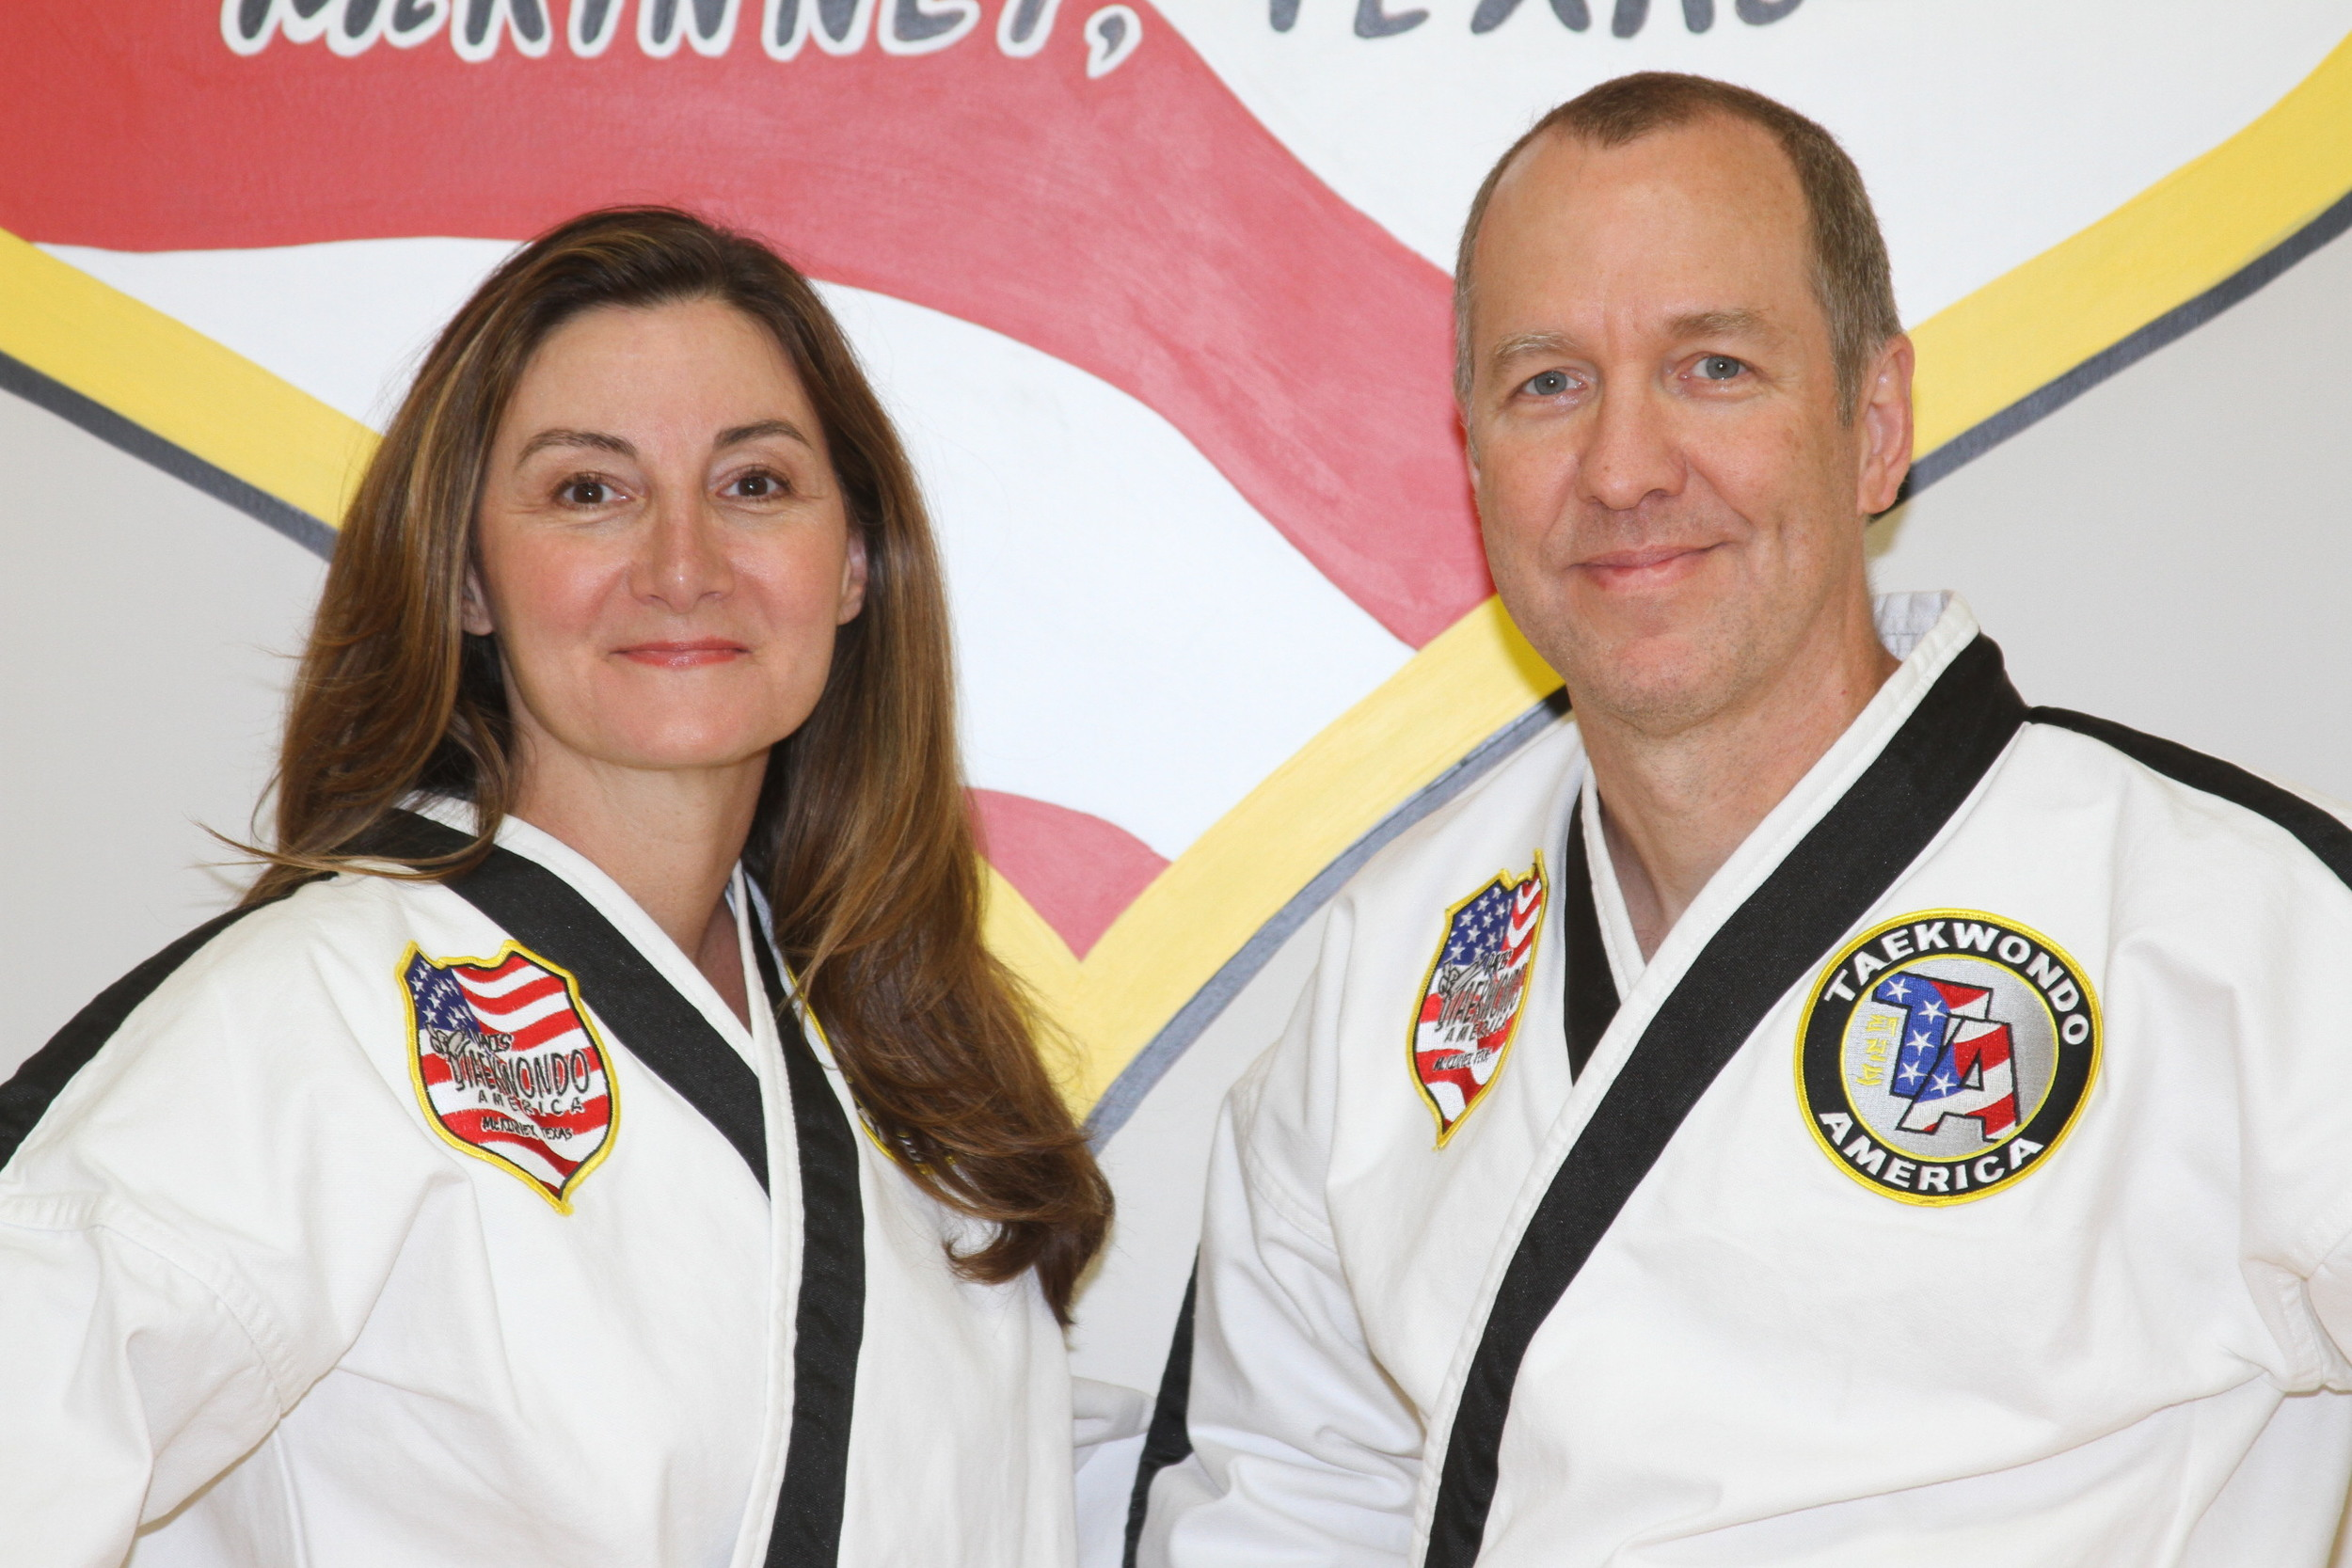 Mr. and Mrs. Davis each have over 25 years of martial arts experience.